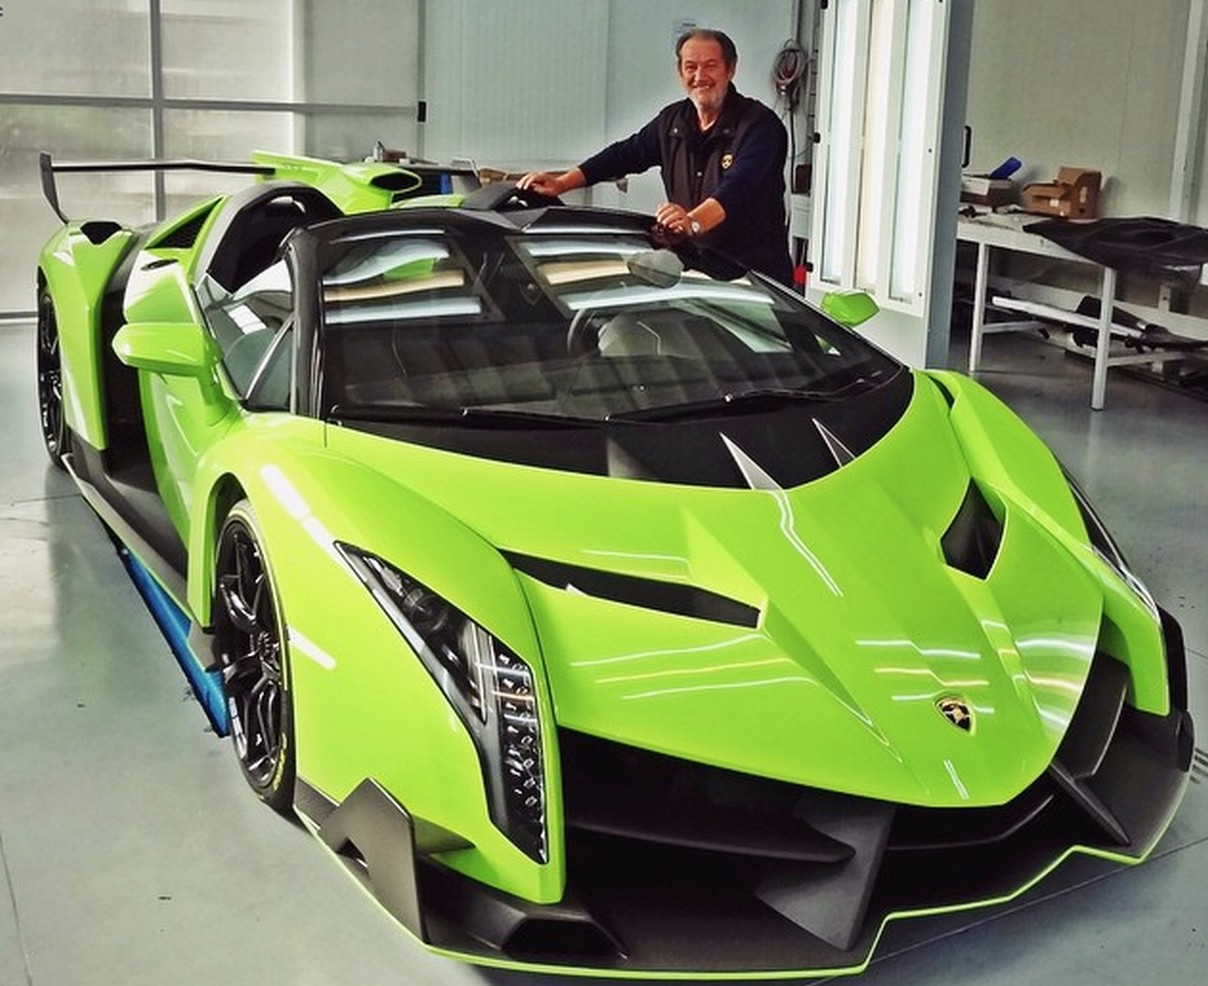 One Guy Now Owns Two Lamborghini Venenos Probably